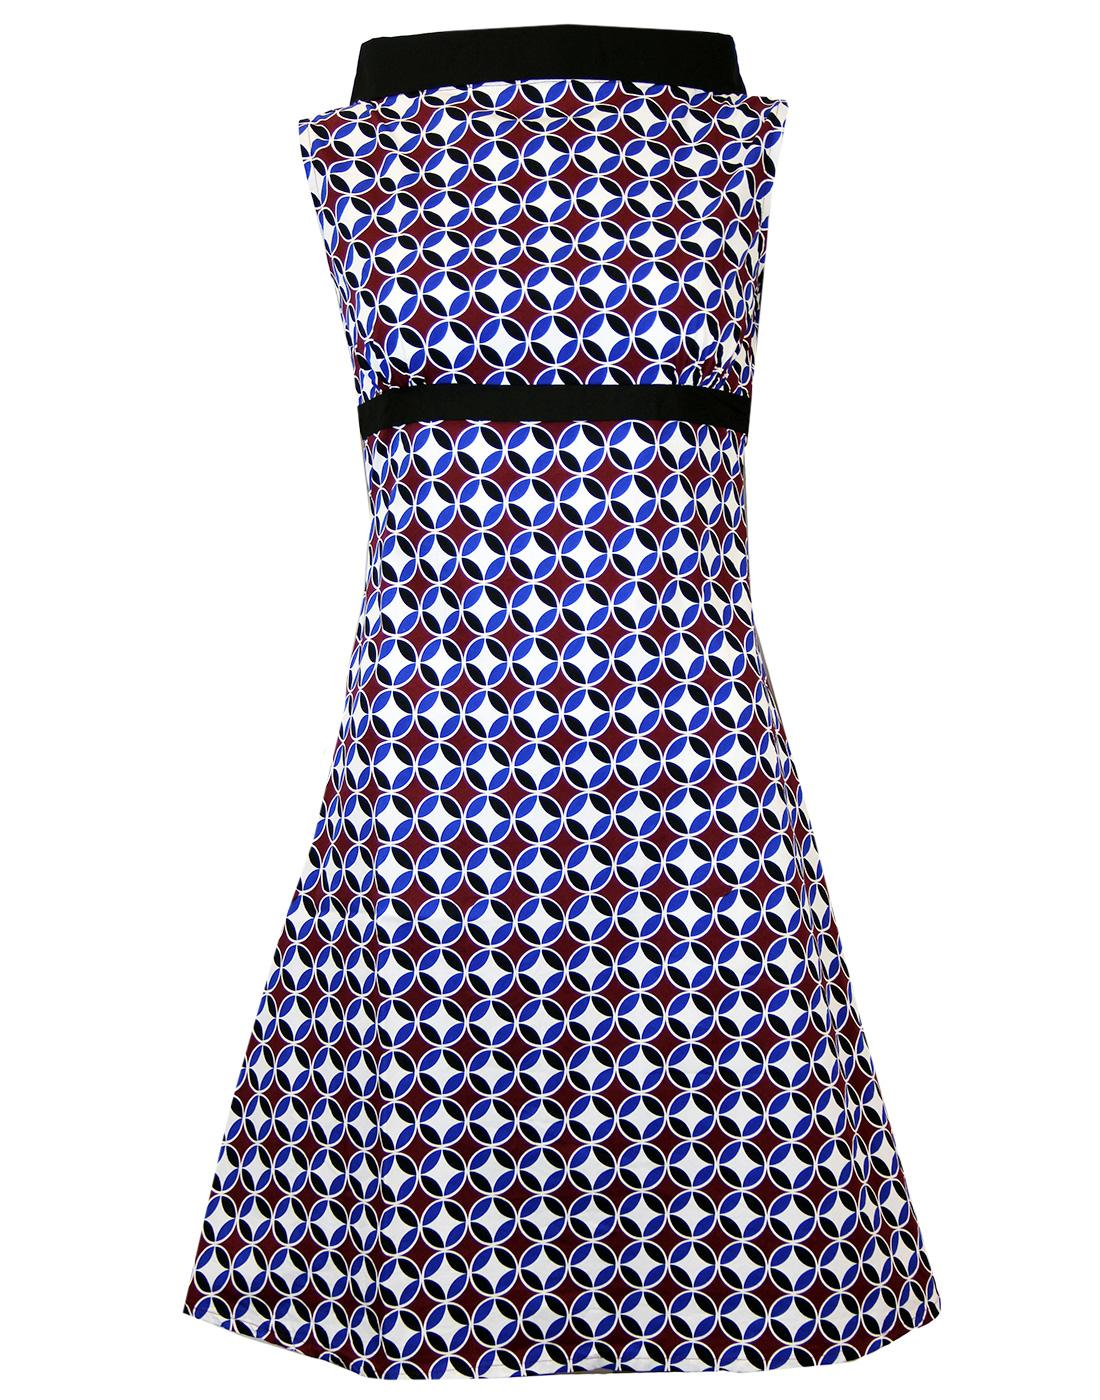 Ace Retro MADCAP ENGLAND 60s Circle Mod Dress (BB)